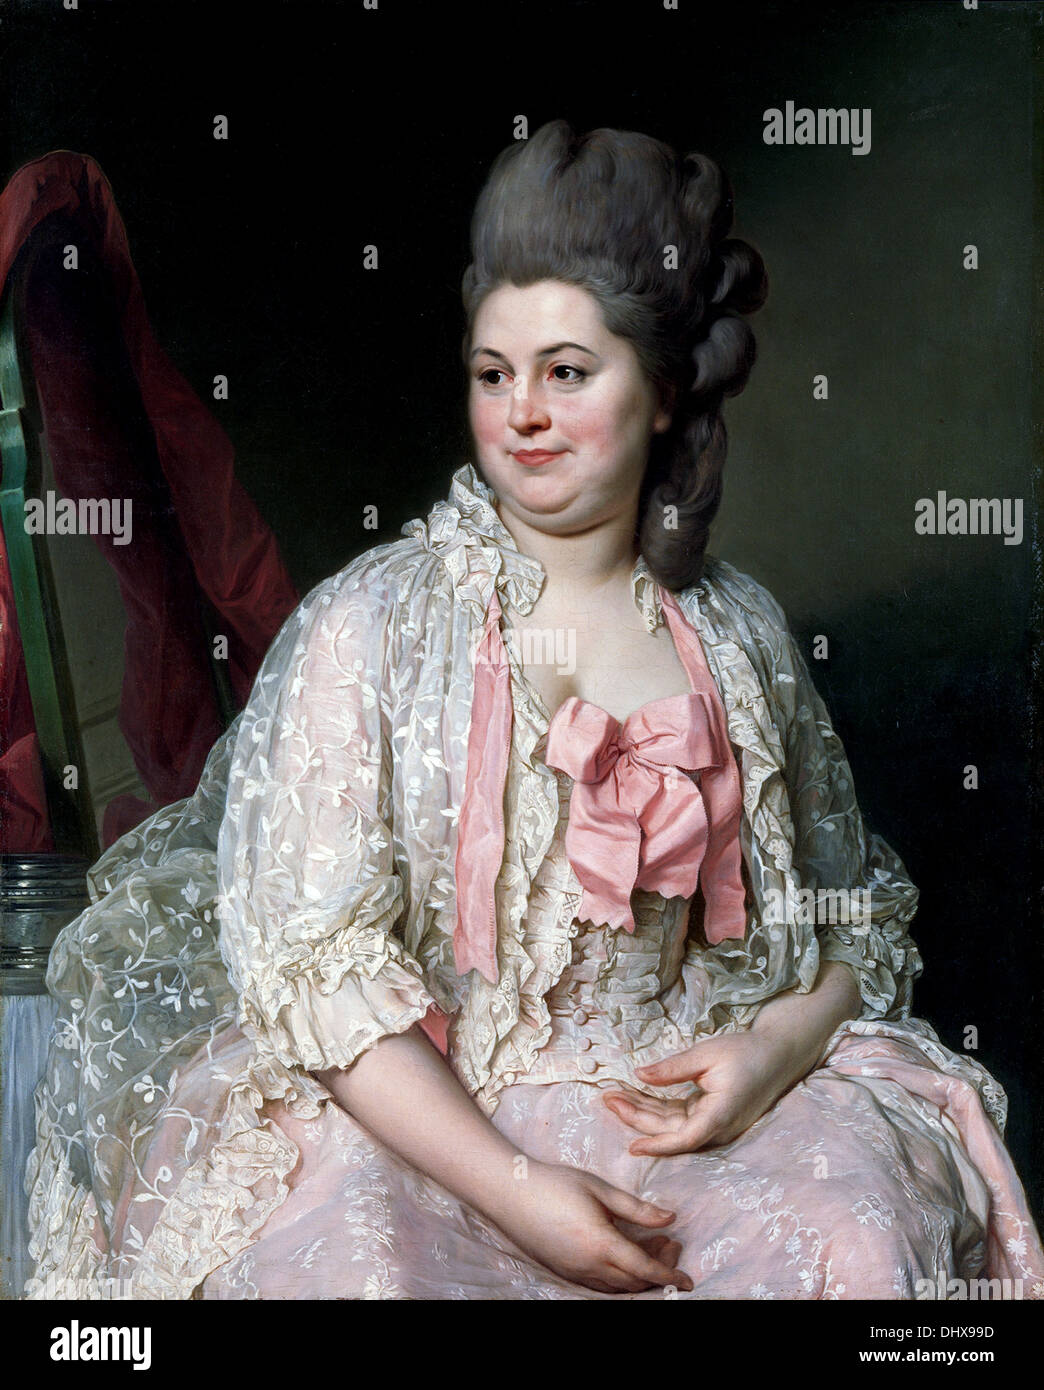 Madame de Saint-Maurice - by Joseph Siffred Duplessis, 1776 - Stock Image